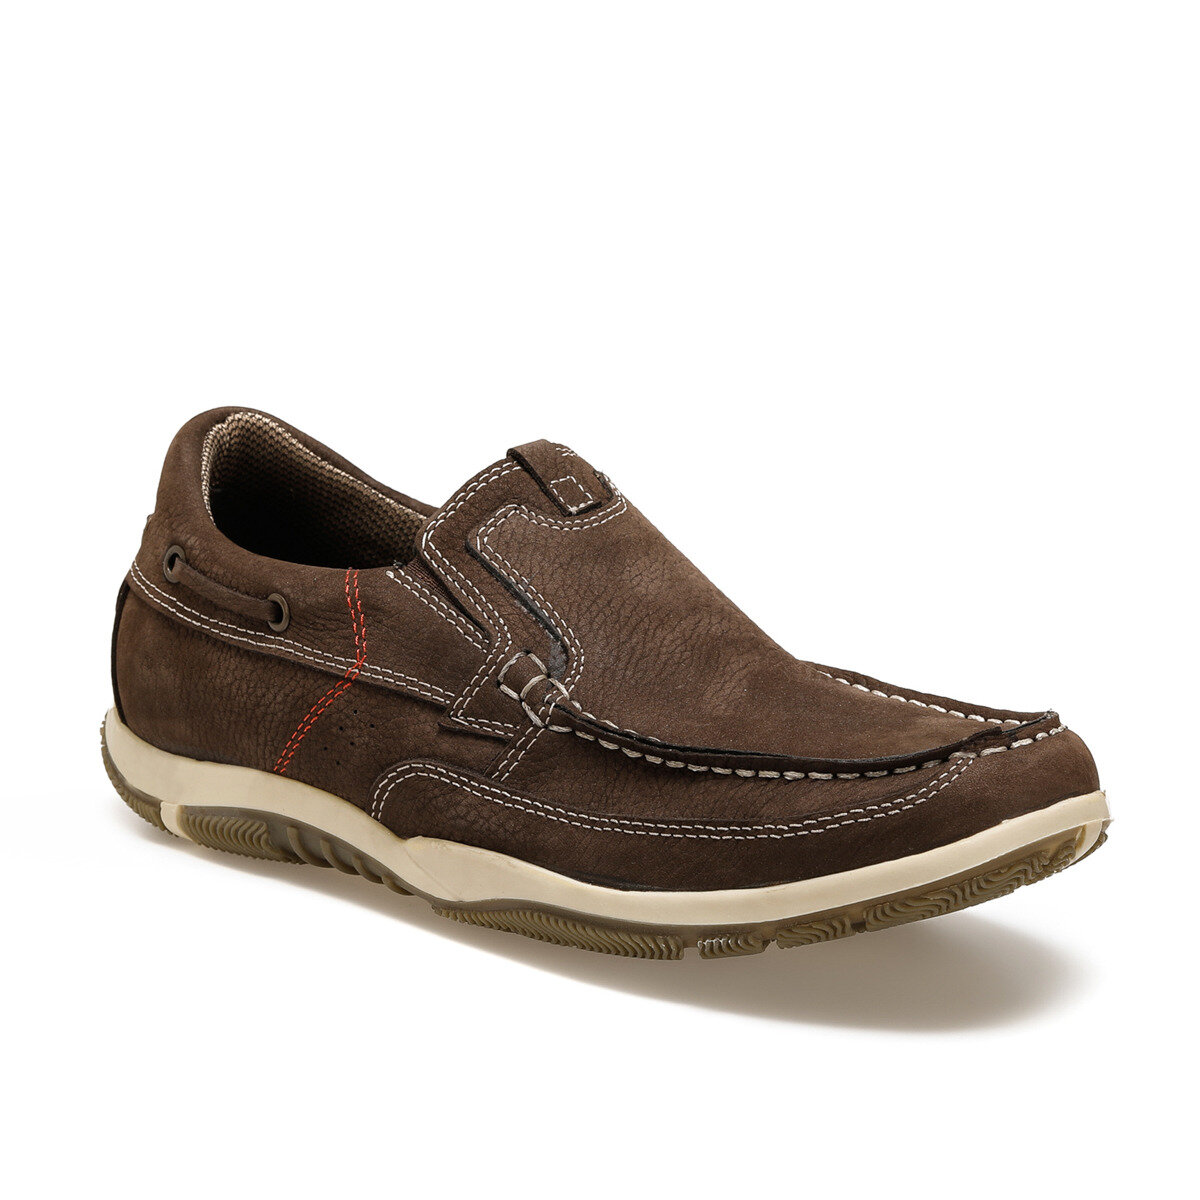 FLO 5075-N C Sand Color Men Shoes Oxide